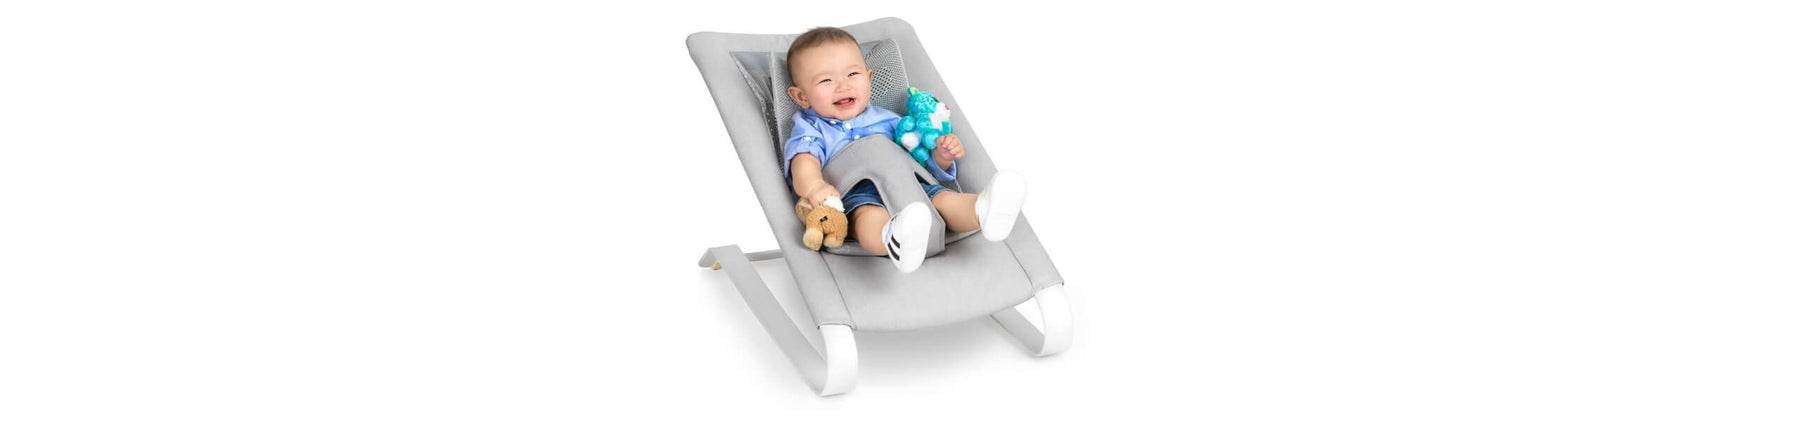 Baby Bouncer Seat grey with toddler snoozing